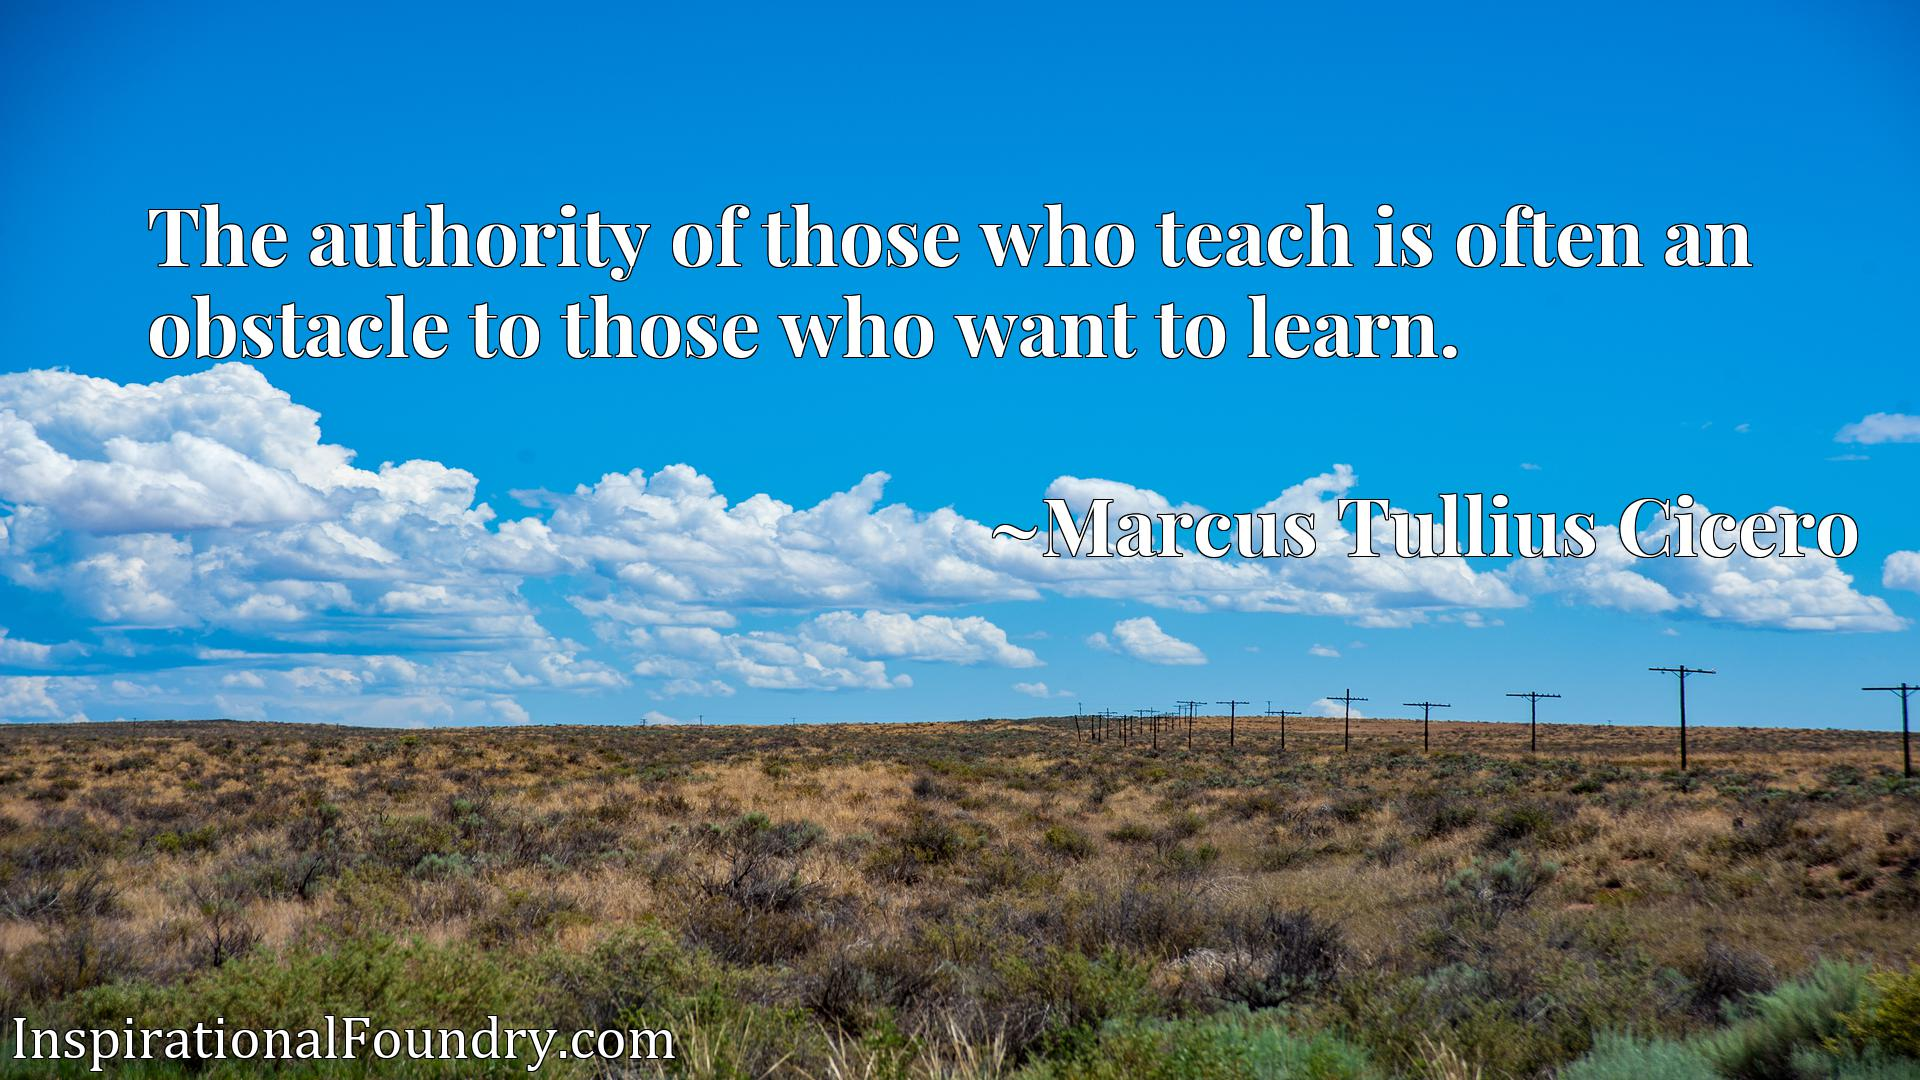 The authority of those who teach is often an obstacle to those who want to learn.